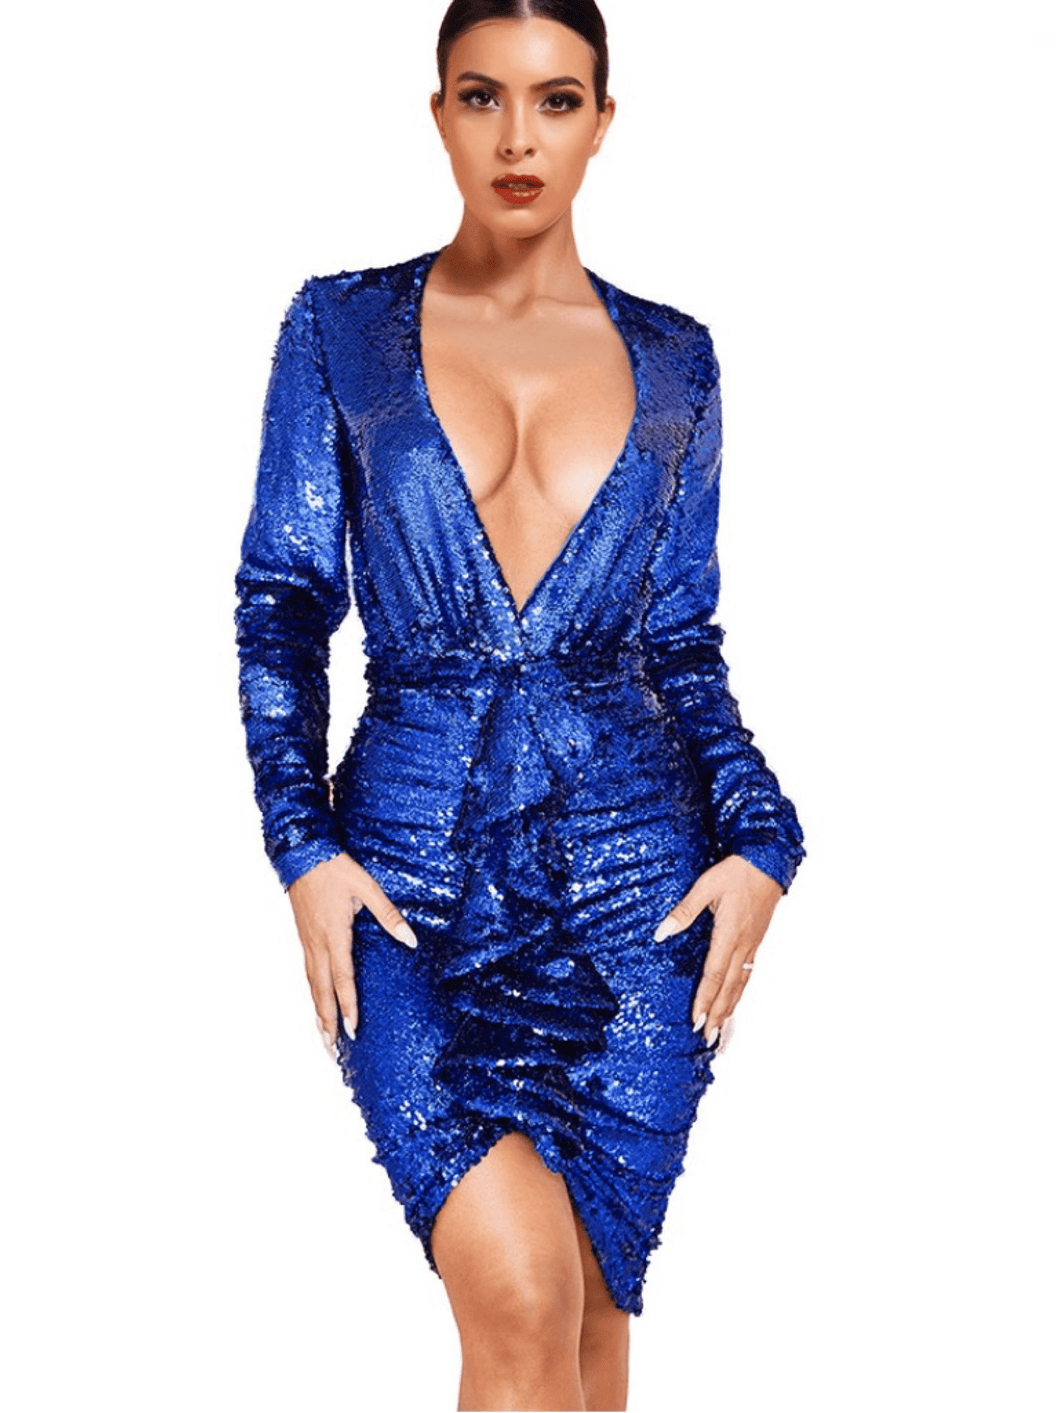 Mandy Blue - Paola Collections